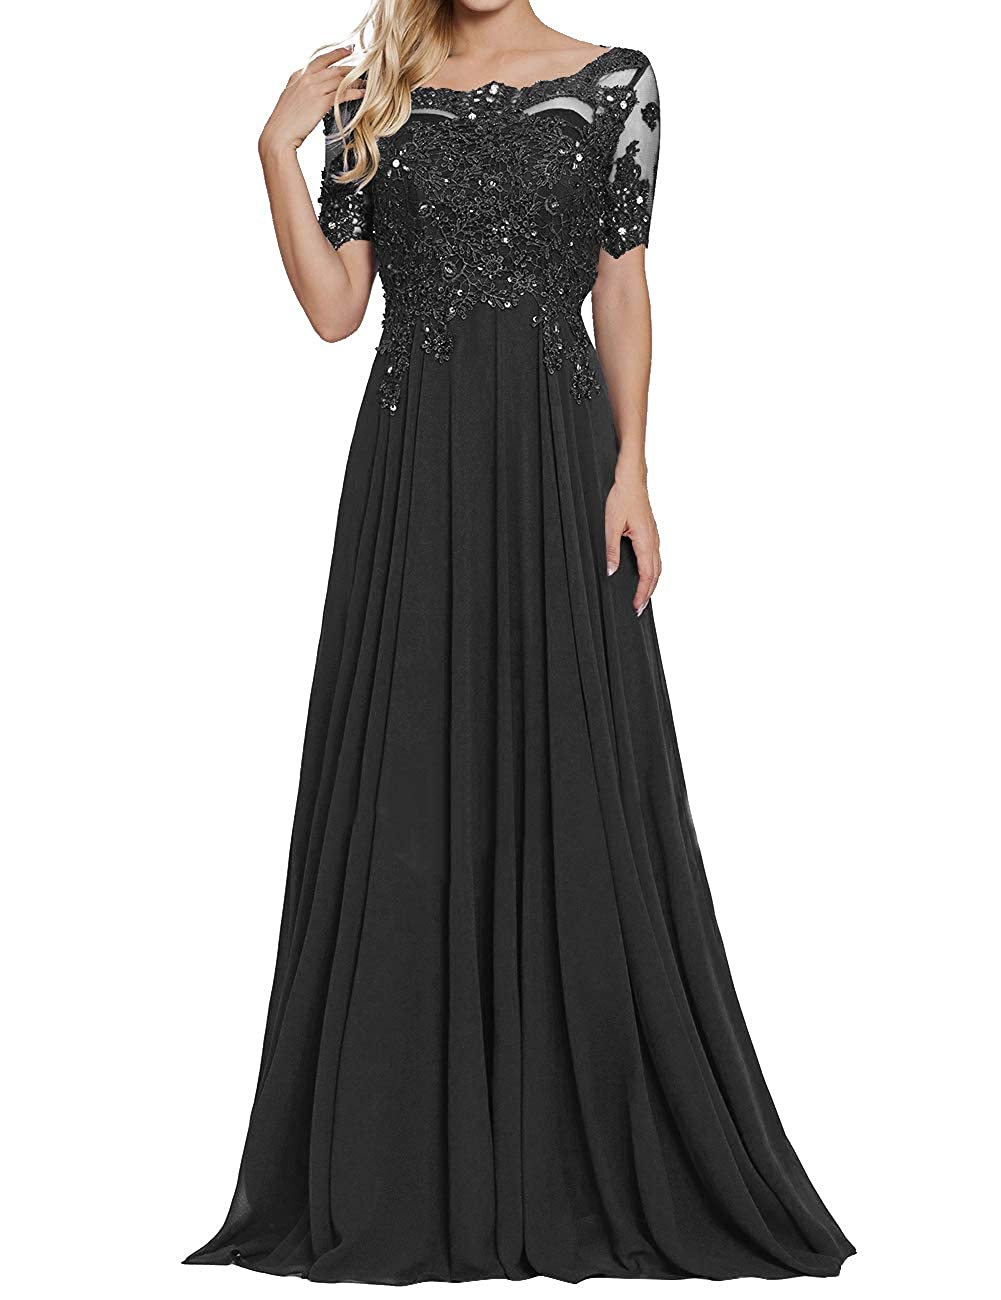 3d954cd2fd7 Mother of The Bride Dresses Appliques Beaded Chiffon Evening Formal Dress  at Amazon Women s Clothing store